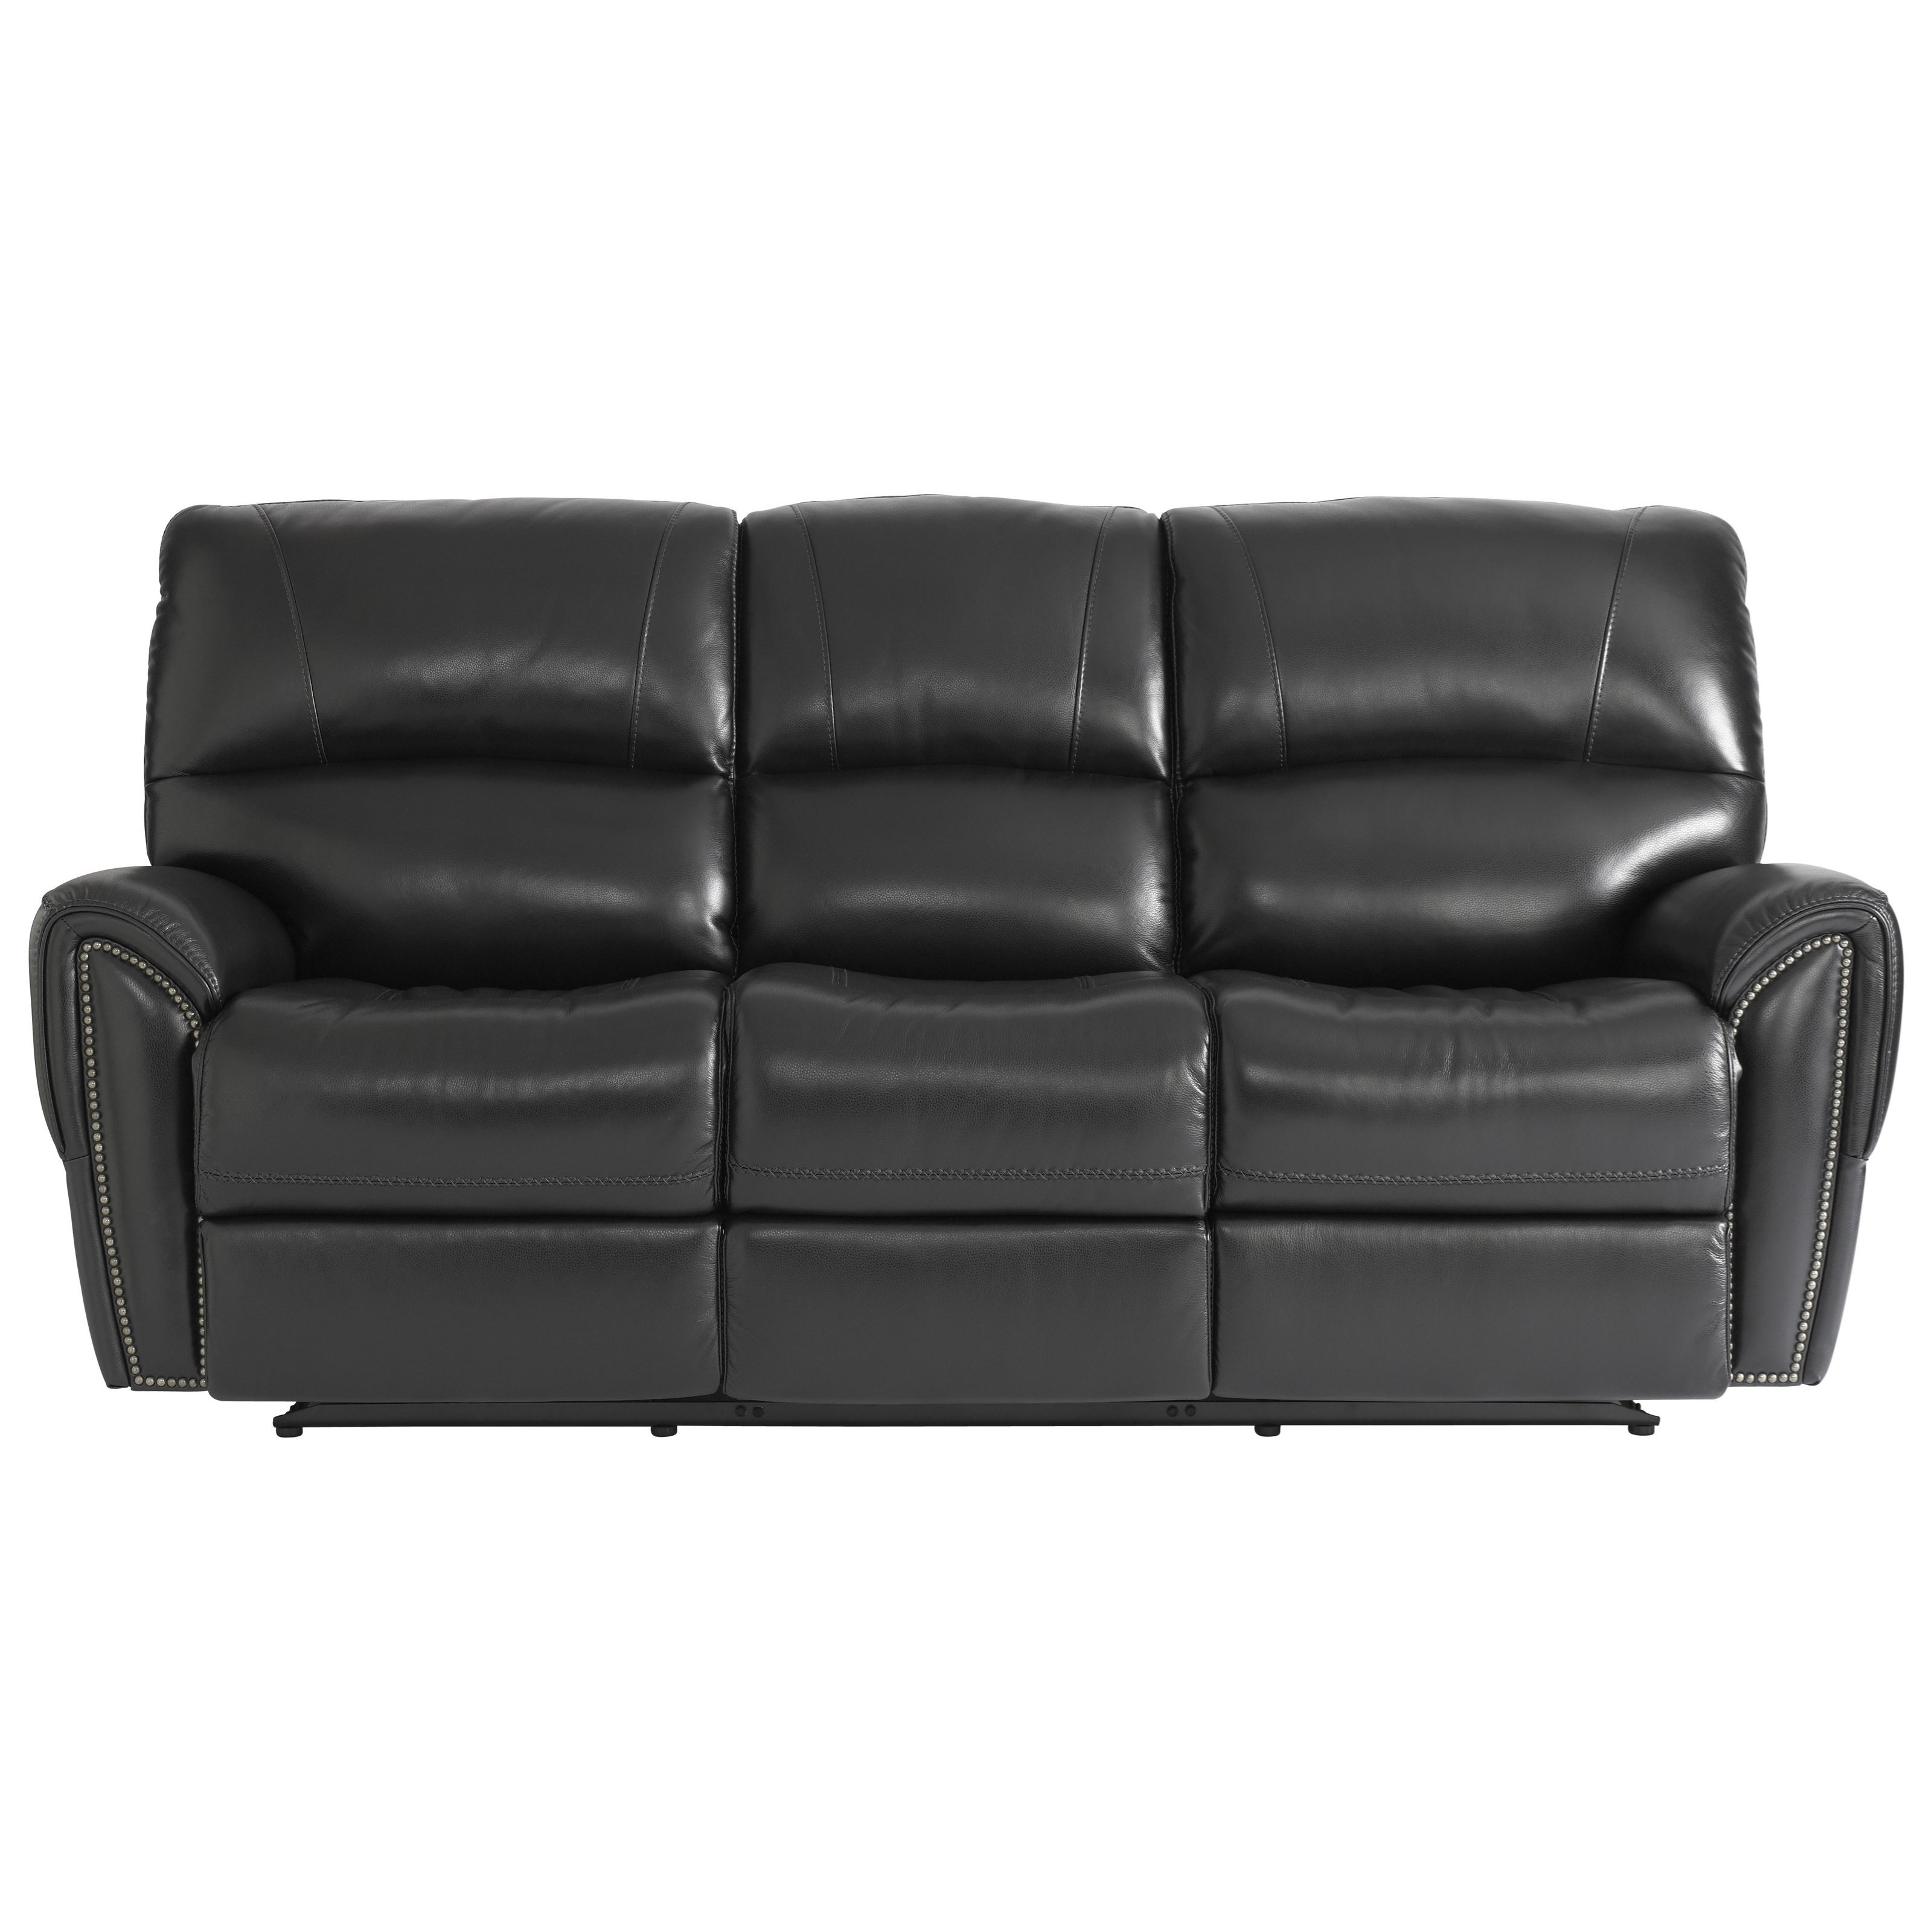 Leather Recliner Sofa Manchester: Bassett Manchester 3725-P62J Motion Sofa With Power